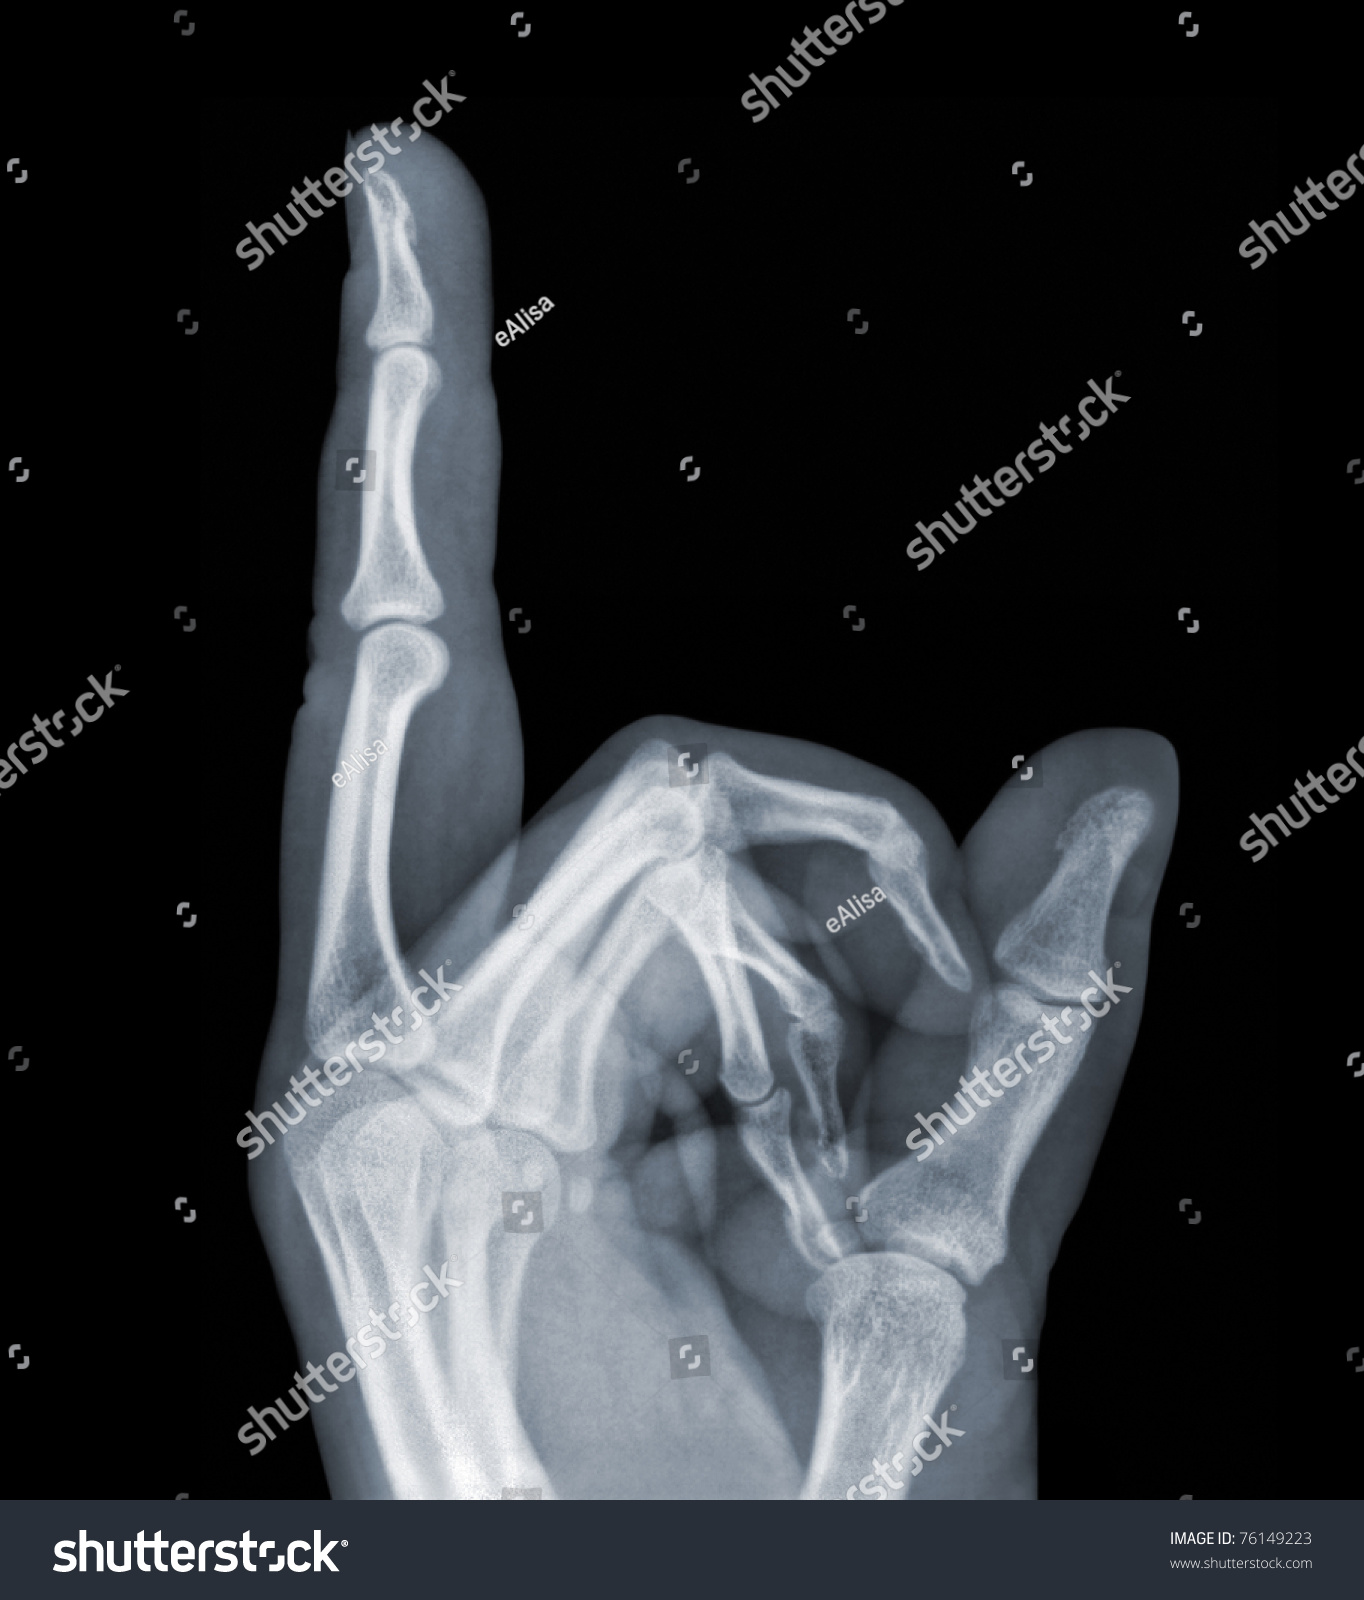 Xray Hand Showing Middle Finger Sign Stockfoto (Lizenzfrei) 76149223 ...